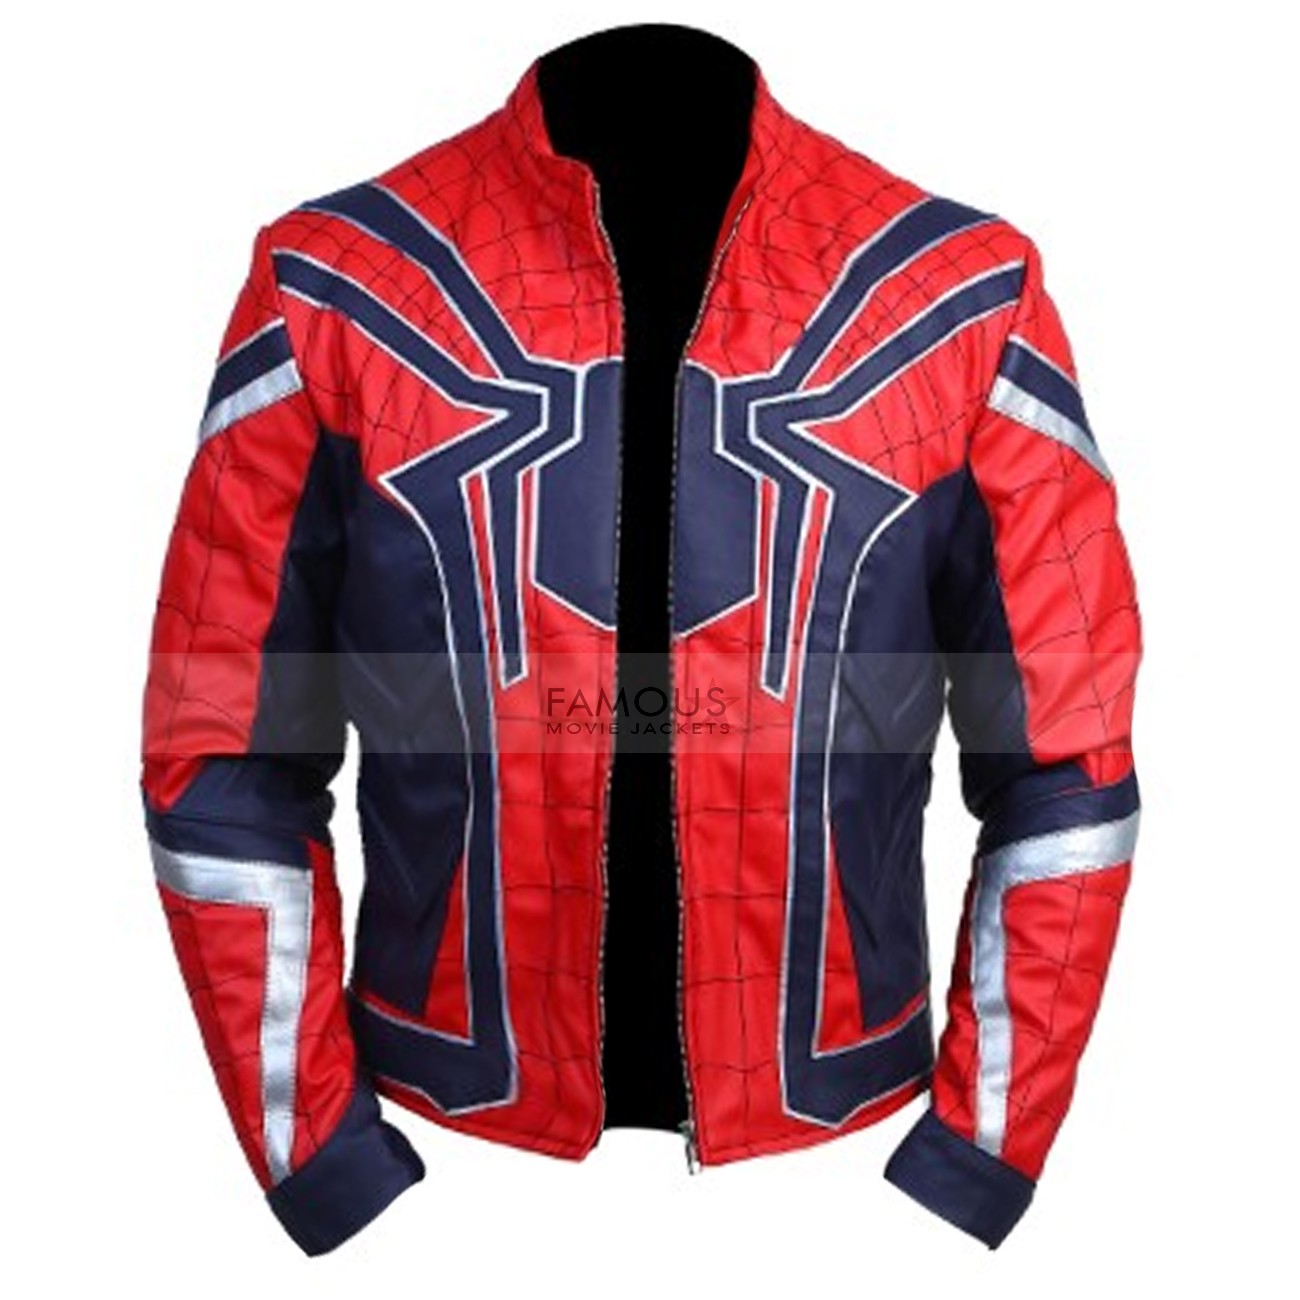 Spiderman Avengers Infinity War Iron Spider Jacket